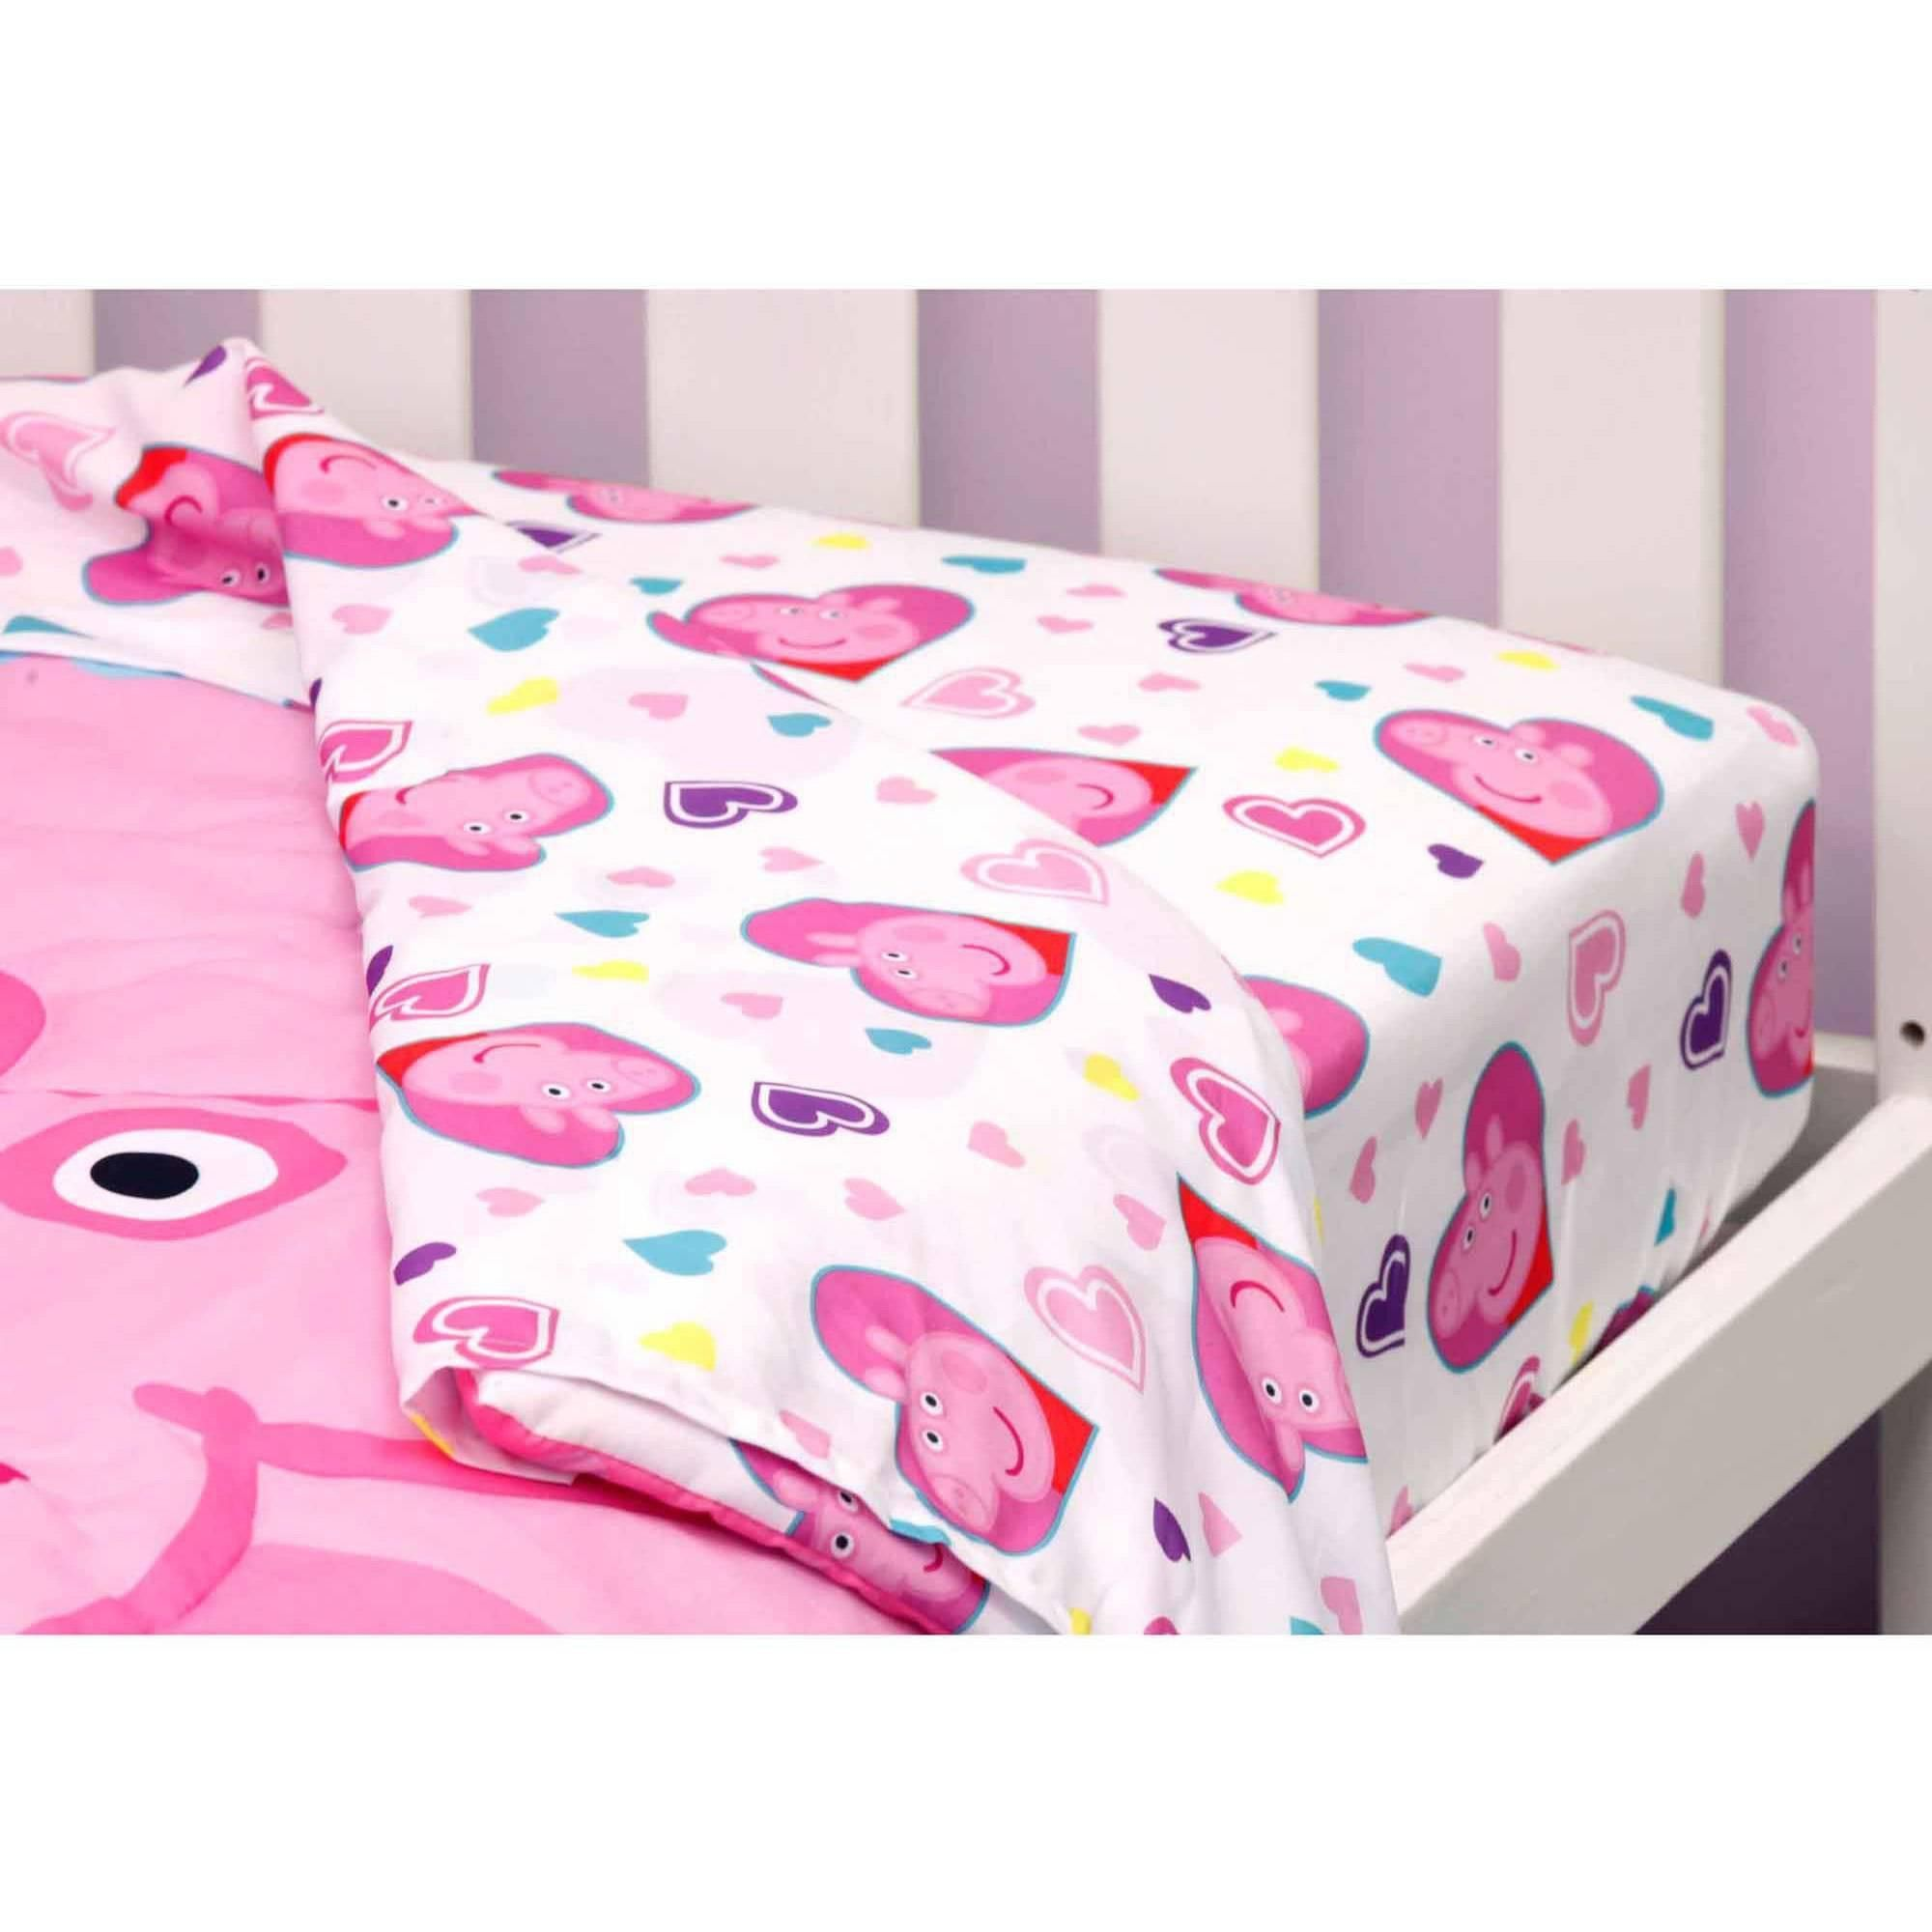 Peppa Pig Toddler Bedding Reversible Set Toddler Bed Set